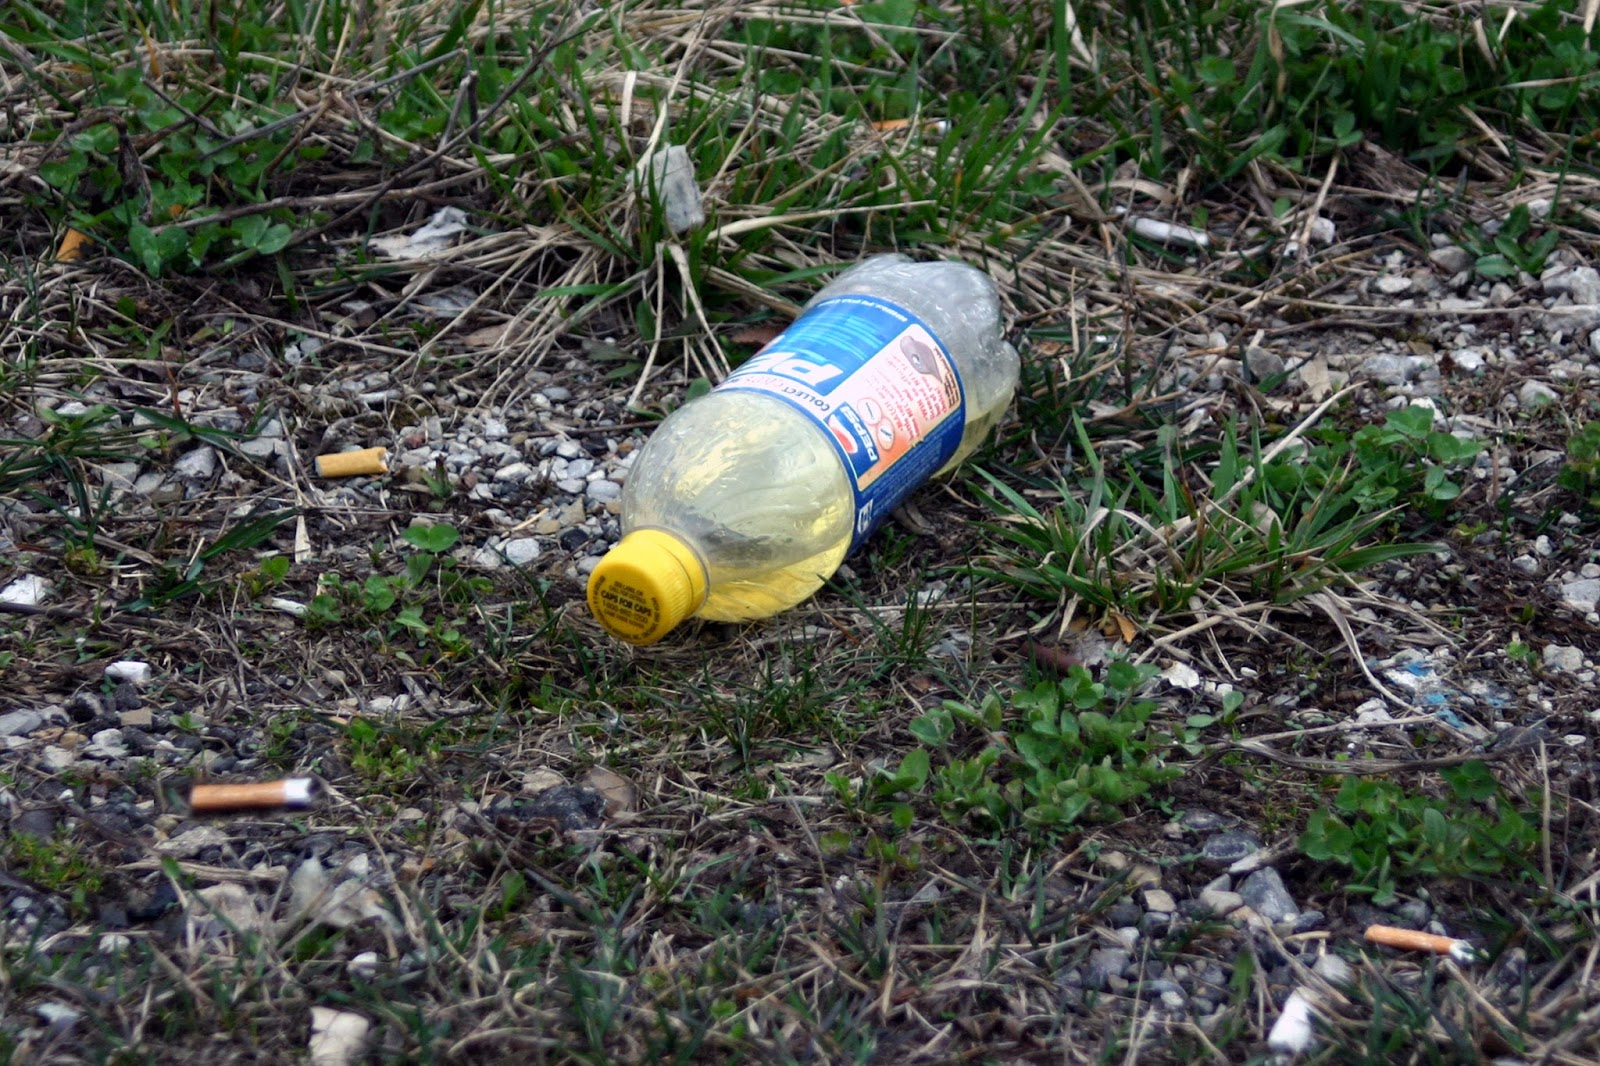 Change The World Wednesday (#CTWW) - Litter